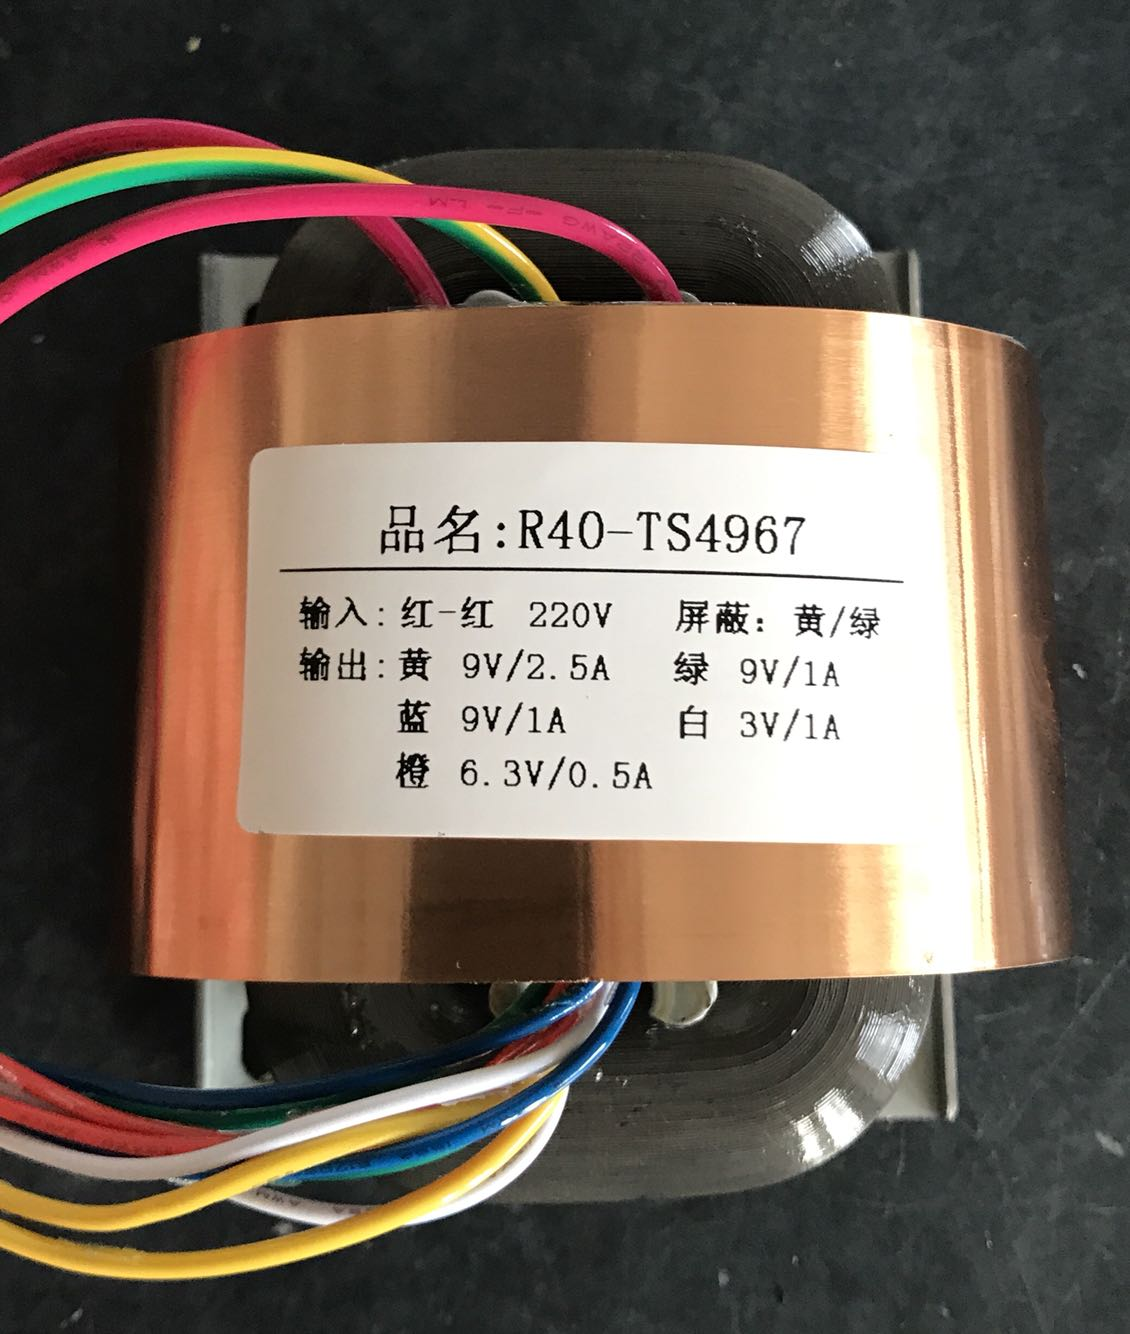 9V 2.5A 2X9V 1A 3V 6.3V R Core Transformer 50VA R40 custom transformer 220V copper shield output for Pre-decoder Power amplifier dolce gabbana the only one туалетные духи 7 5 мл